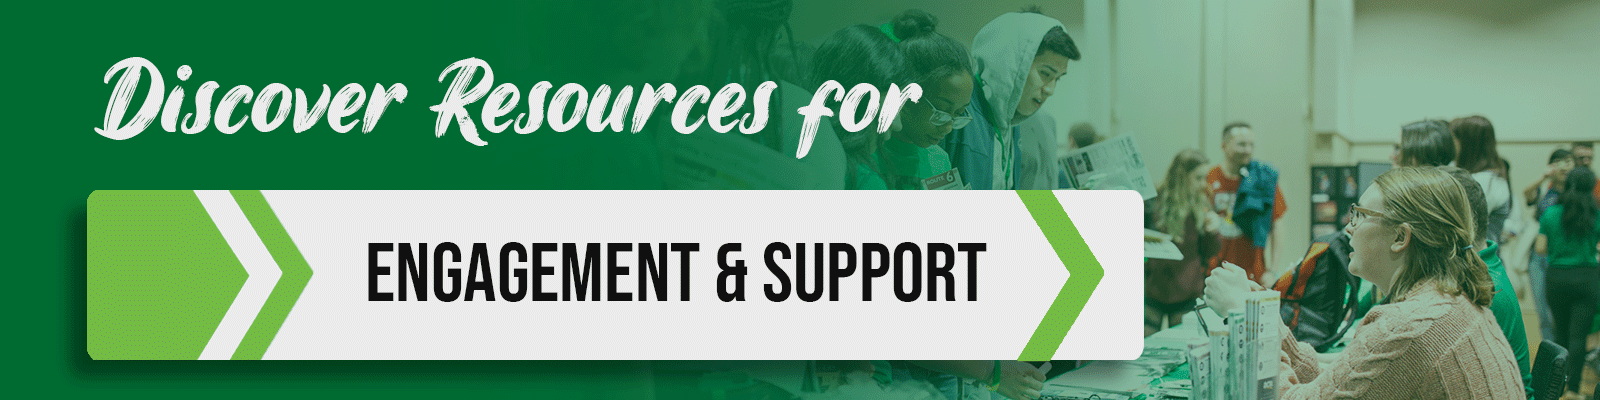 Discover Resources for Engagement and Support